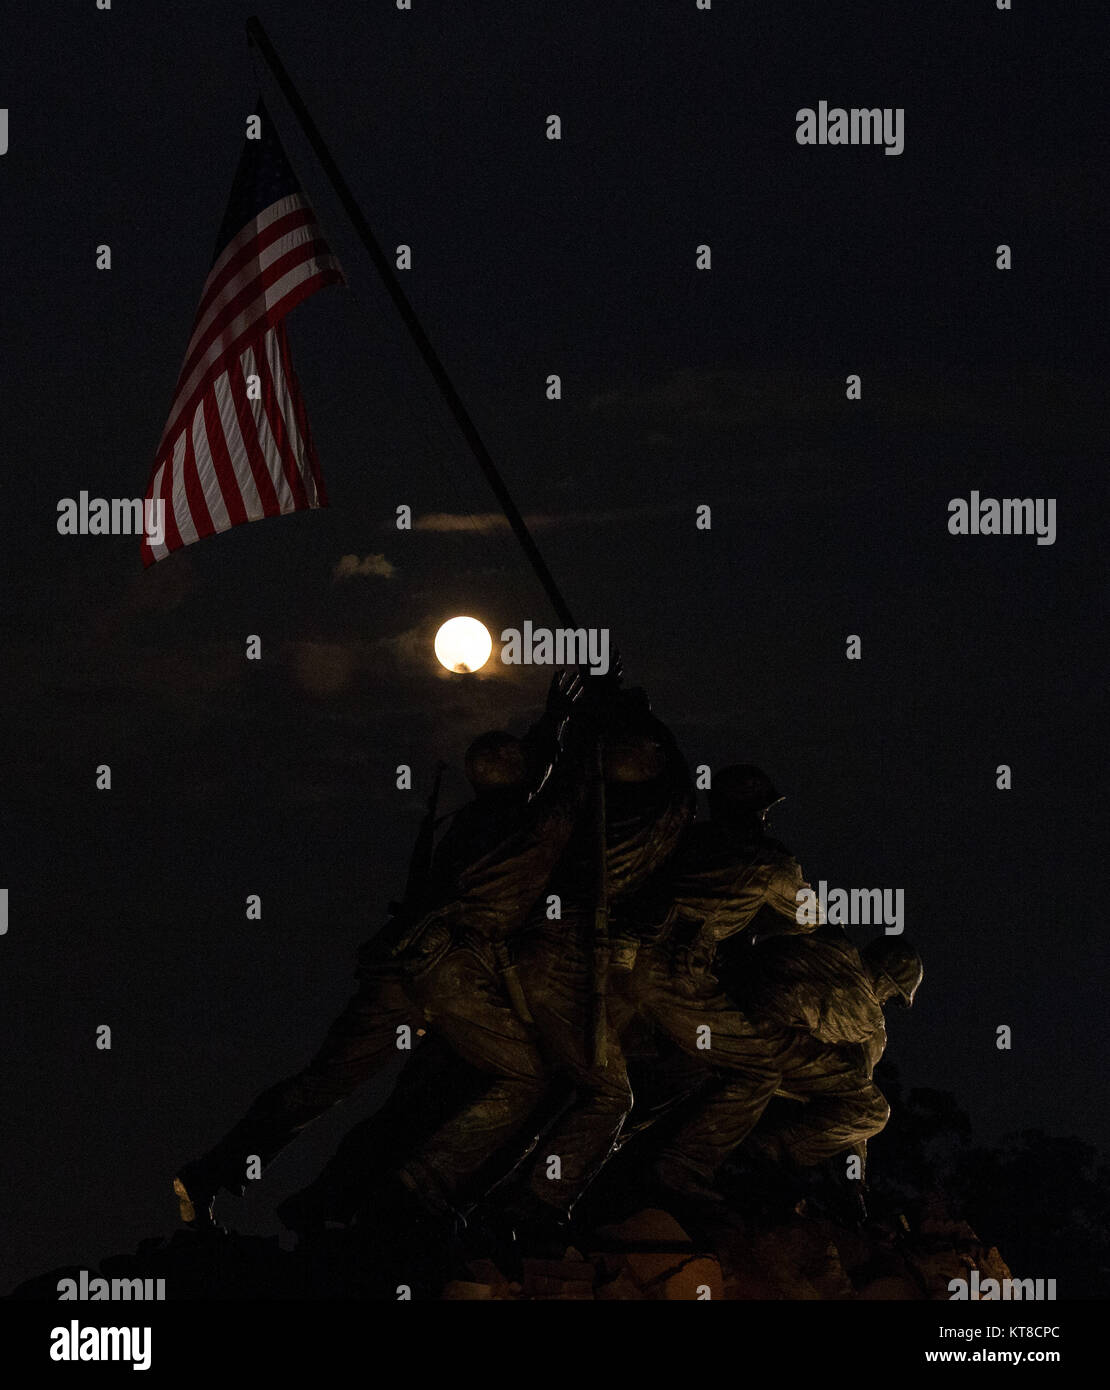 A perigee full moon or supermoon is seen over the US Marine Corps War Memorial, Sunday, August 10, 2014, in Arlington, - Stock Image